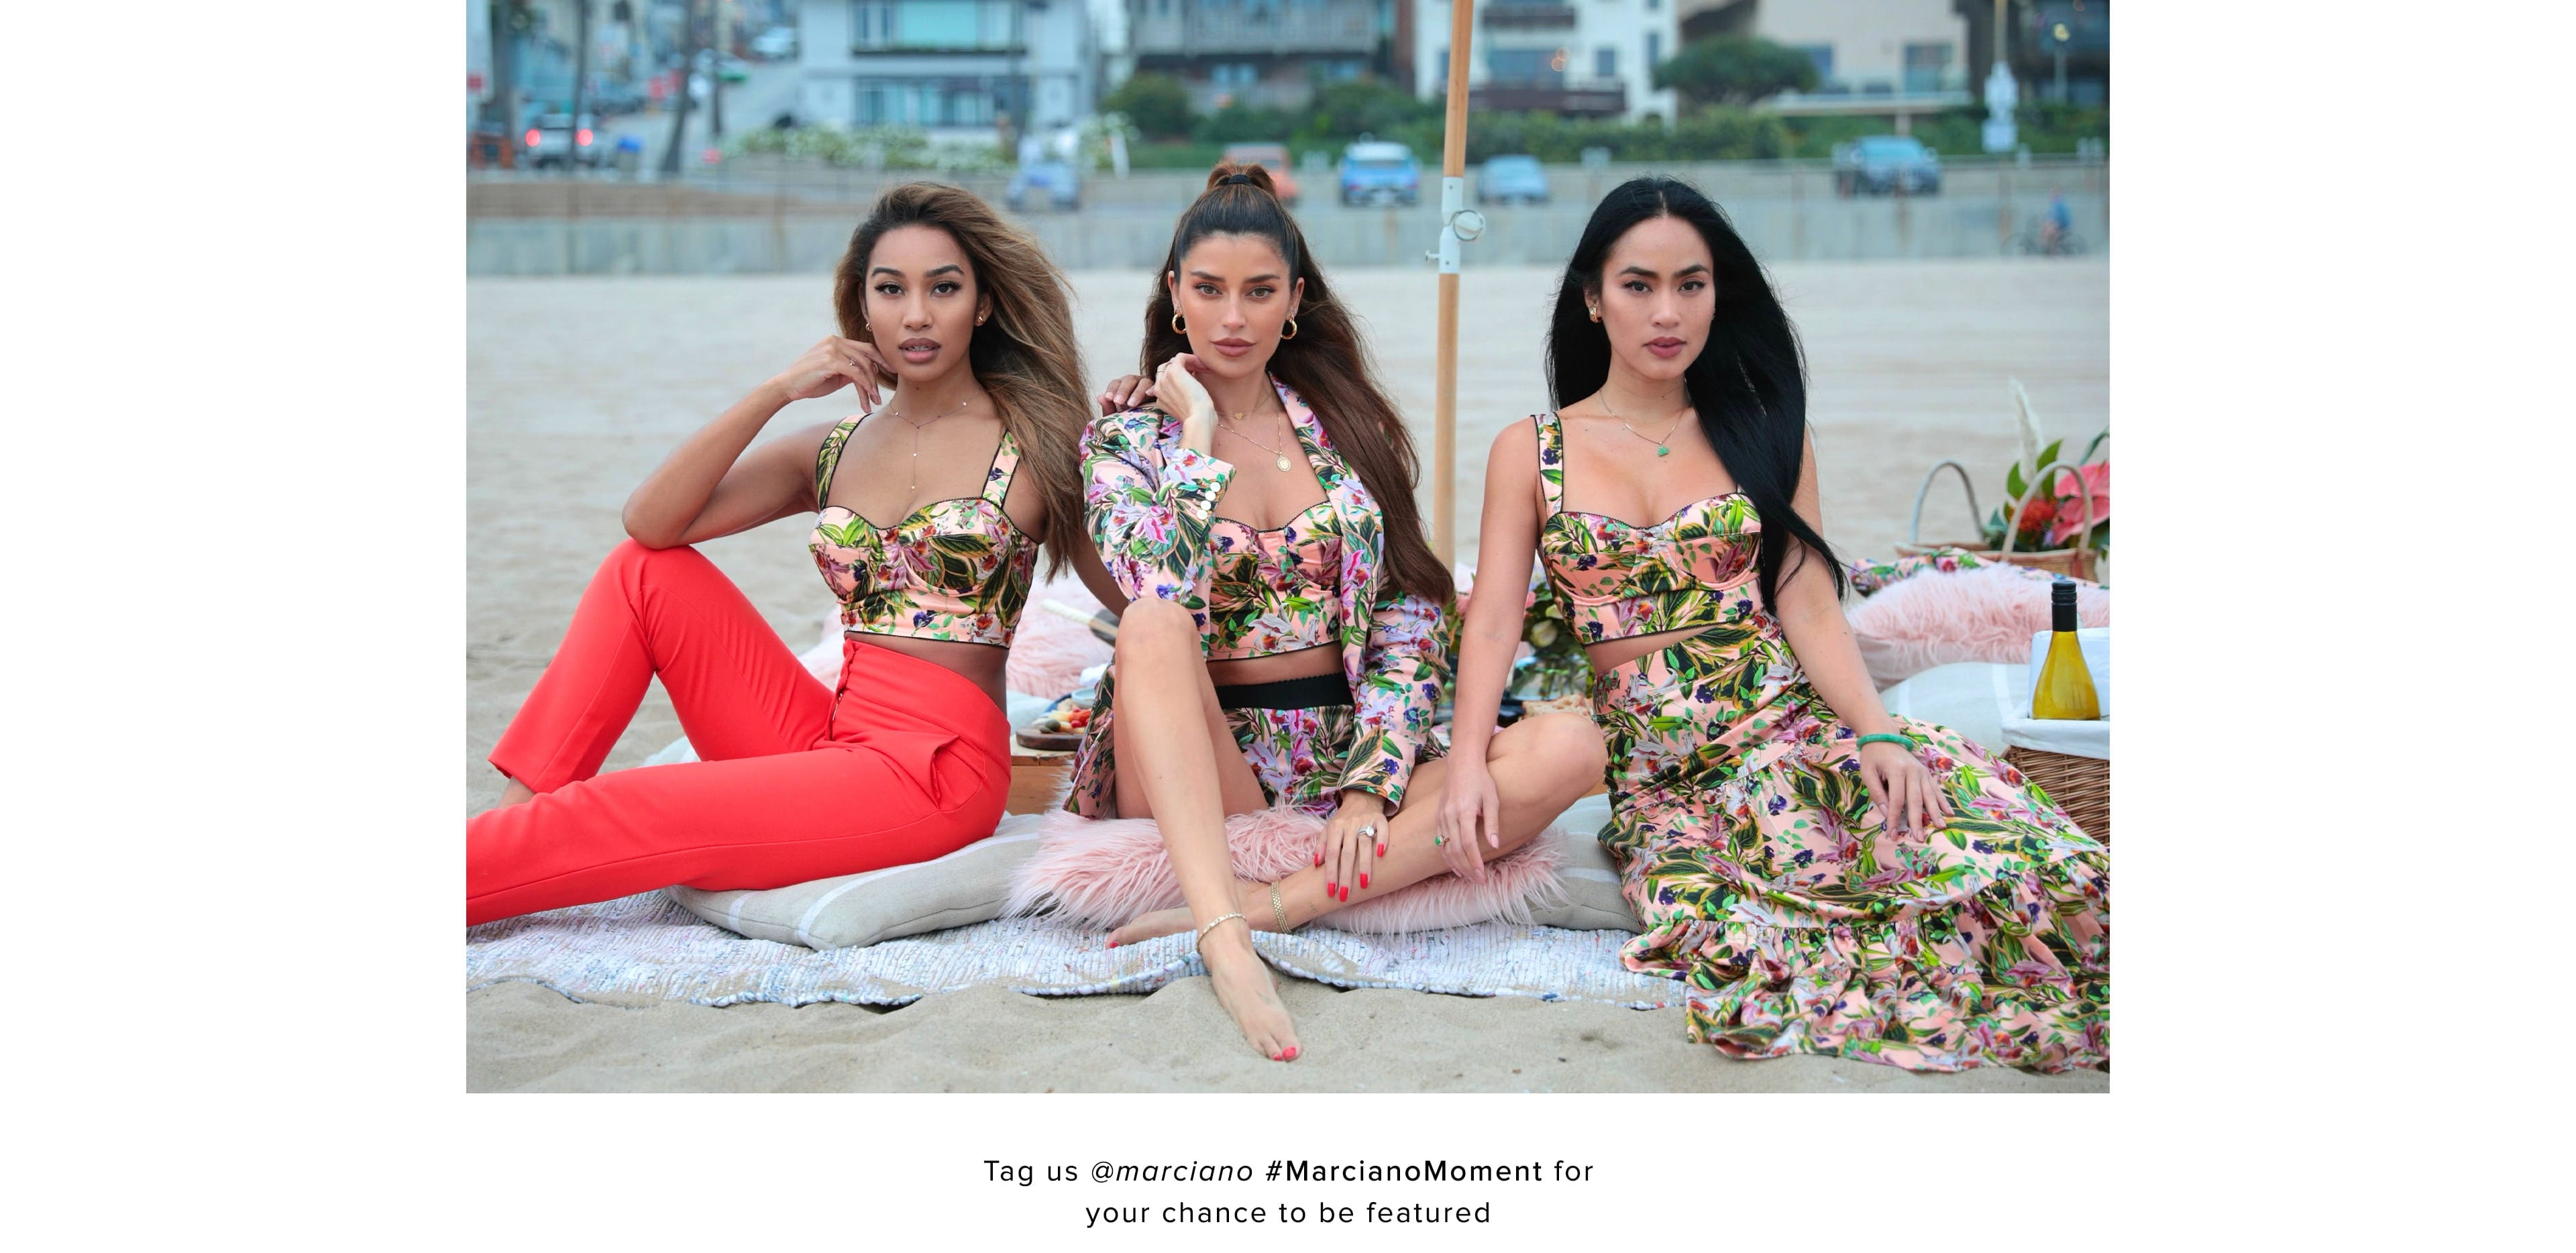 Tag us @marciano #MarcianoMoment for your chance to be featured